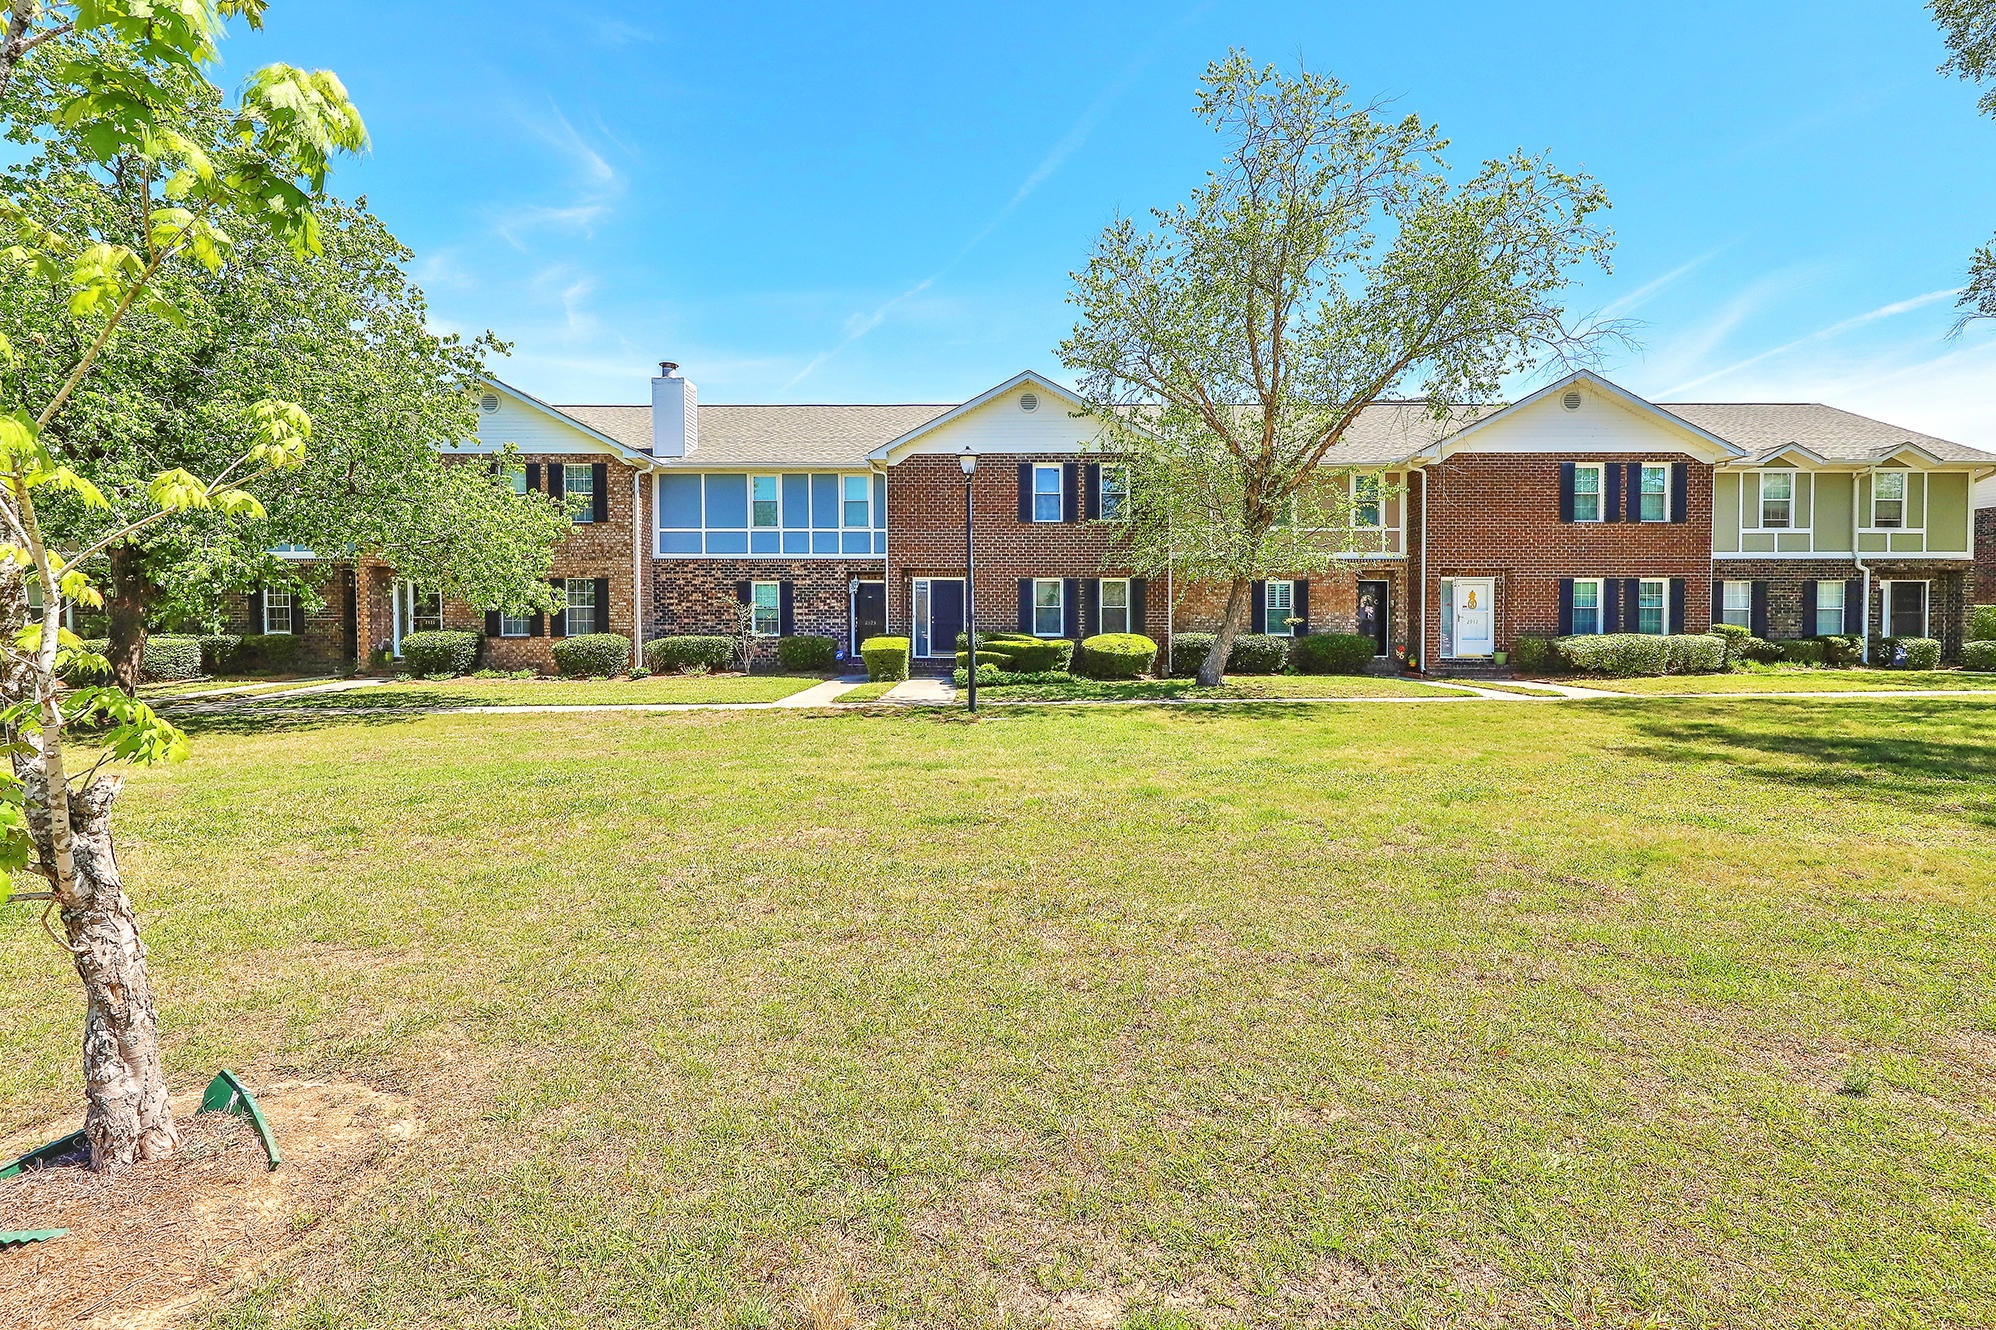 Old Towne Villas Homes For Sale - 2921 Cathedral, Charleston, SC - 0